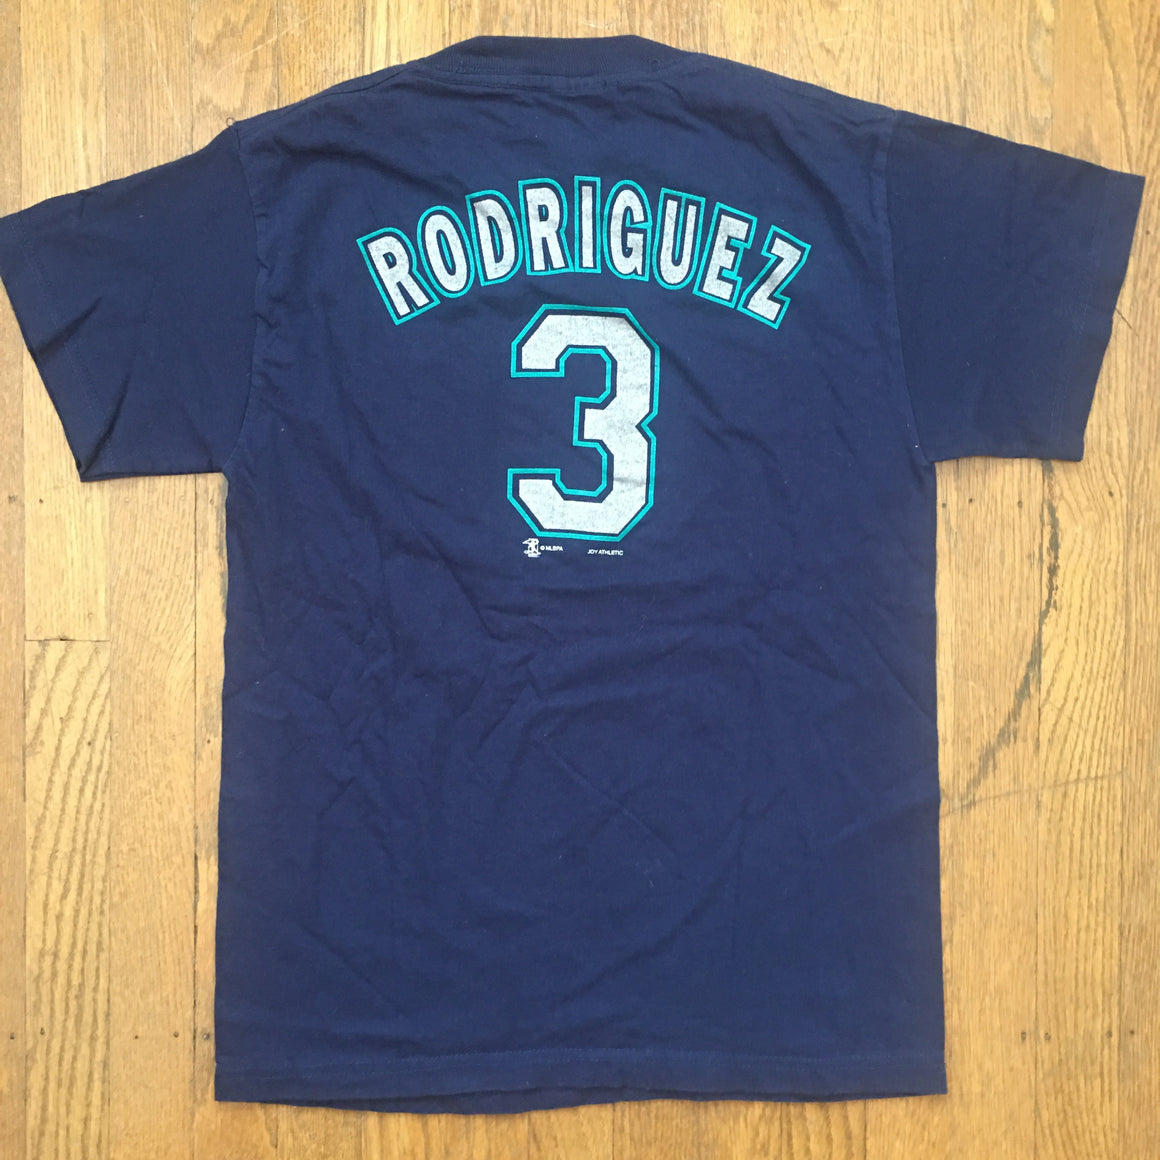 Seattle Mariners Alex Rodriguez shirt - S